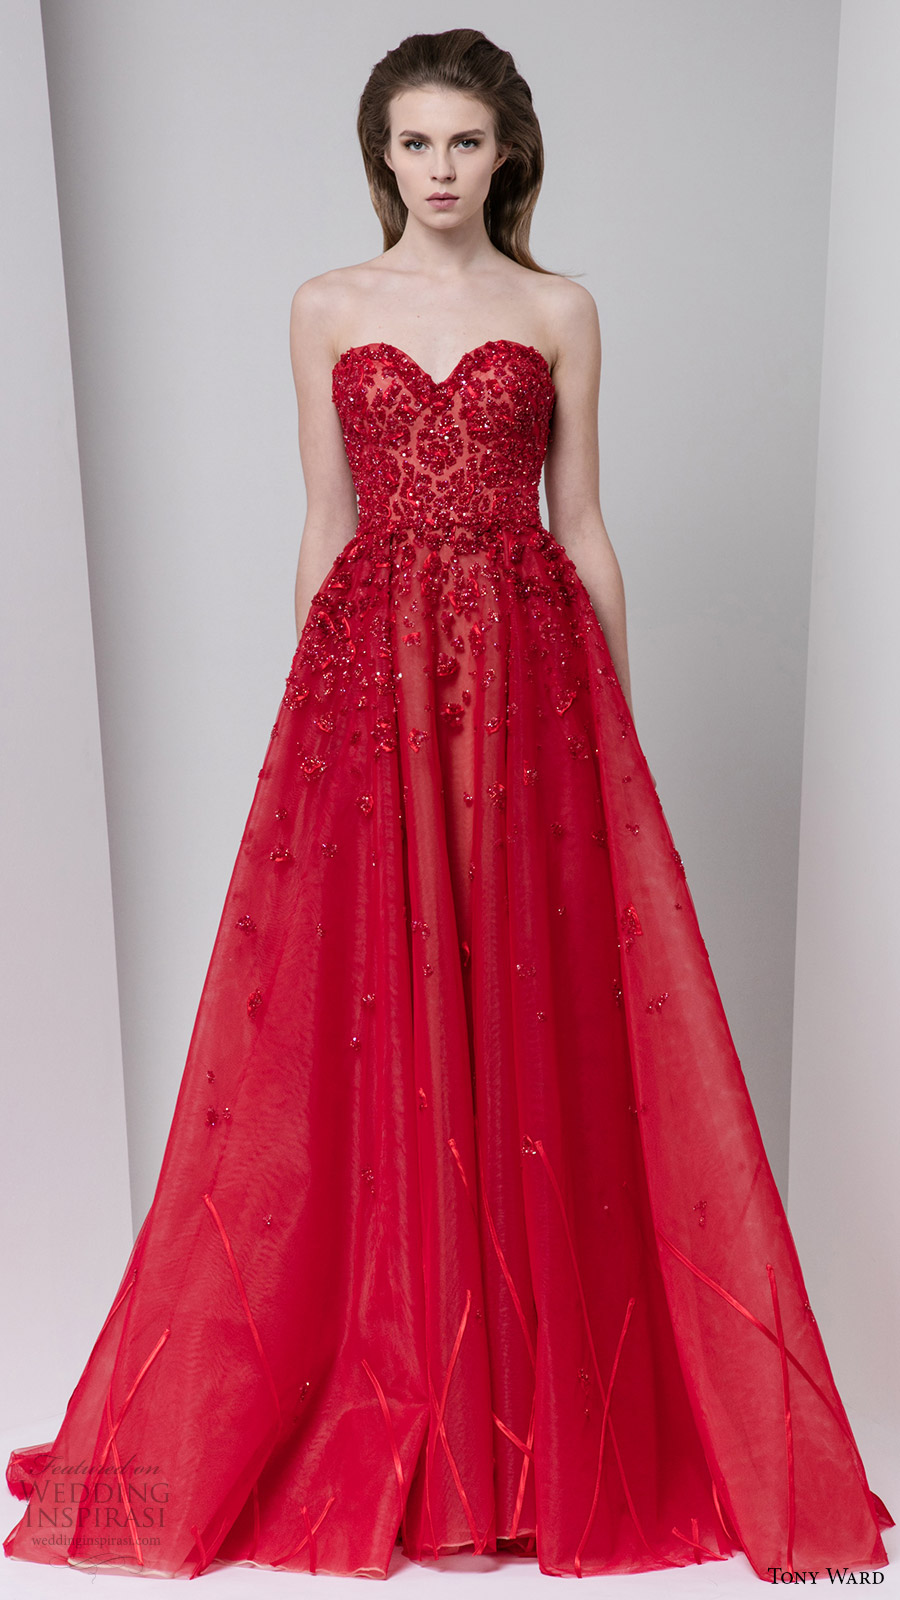 tony ward fall 2016 rtw strapless sweetheart a line red evening gown embellished bodice couture bridal inspiration